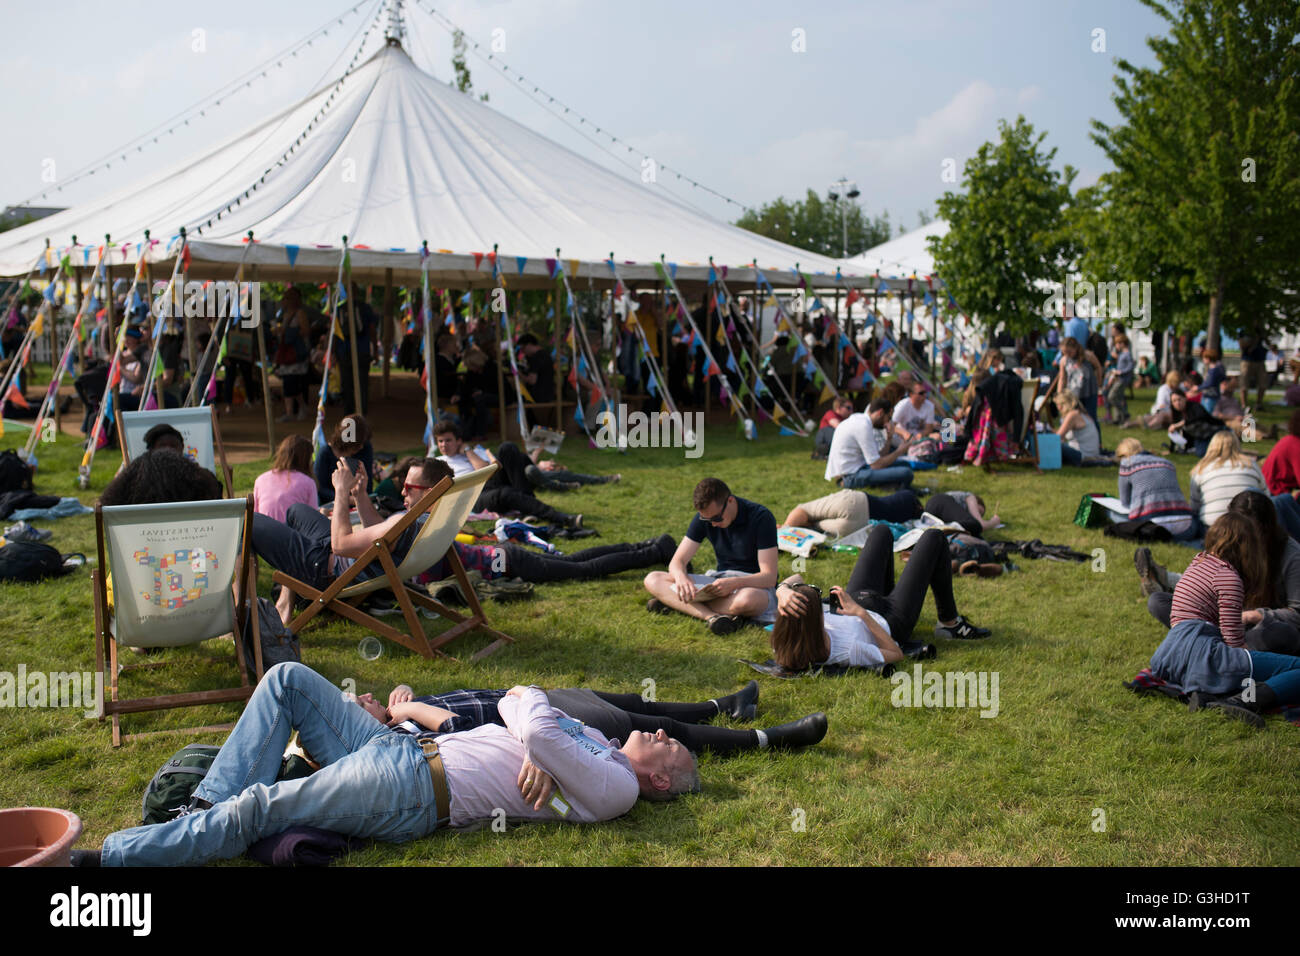 A general view at Hay Festival of literature and arts in Hay-on-Wye, Wales. - Stock Image